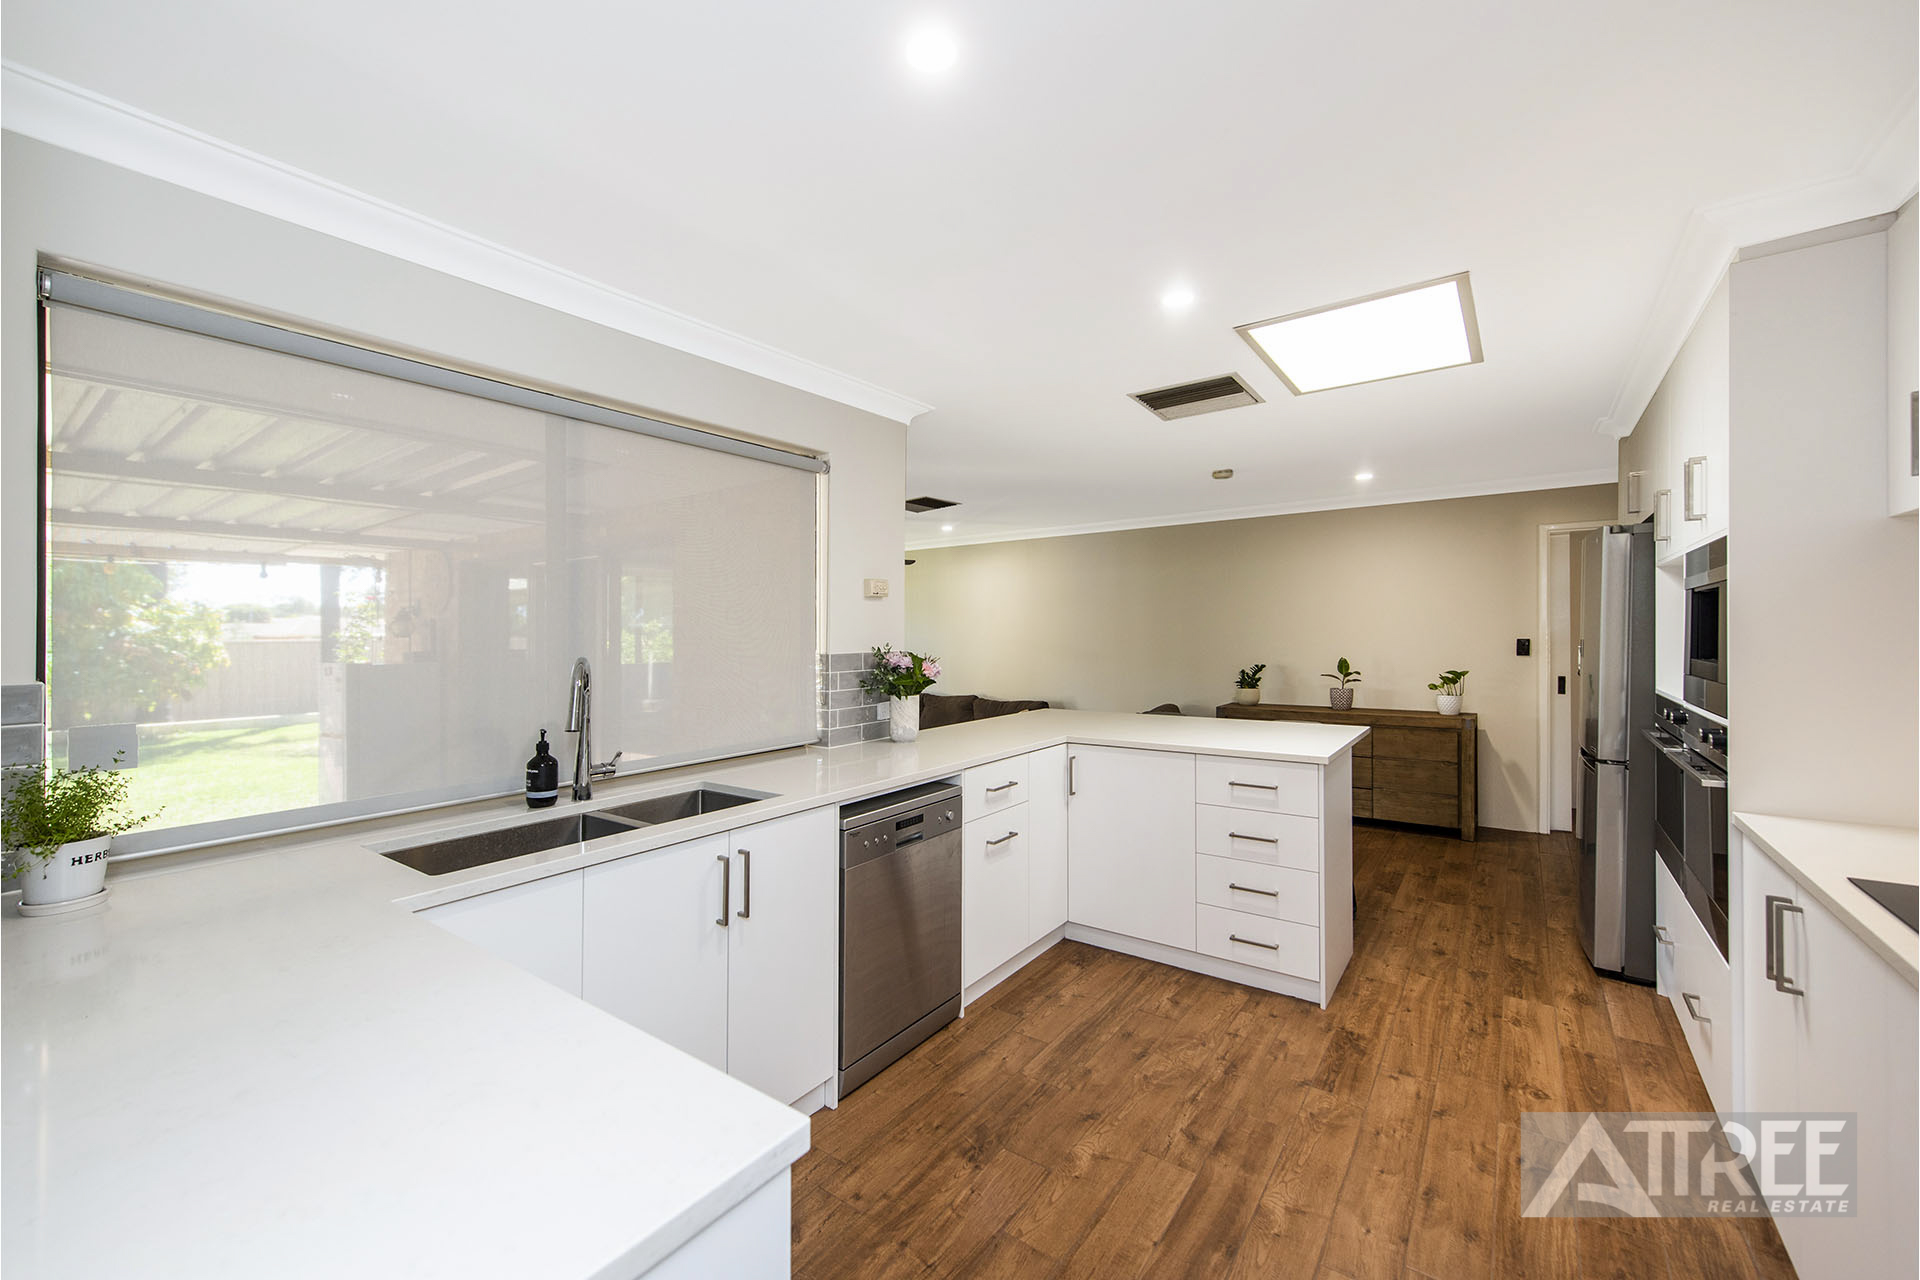 Property for sale in HUNTINGDALE, 26 Rusthall Way : Attree Real Estate